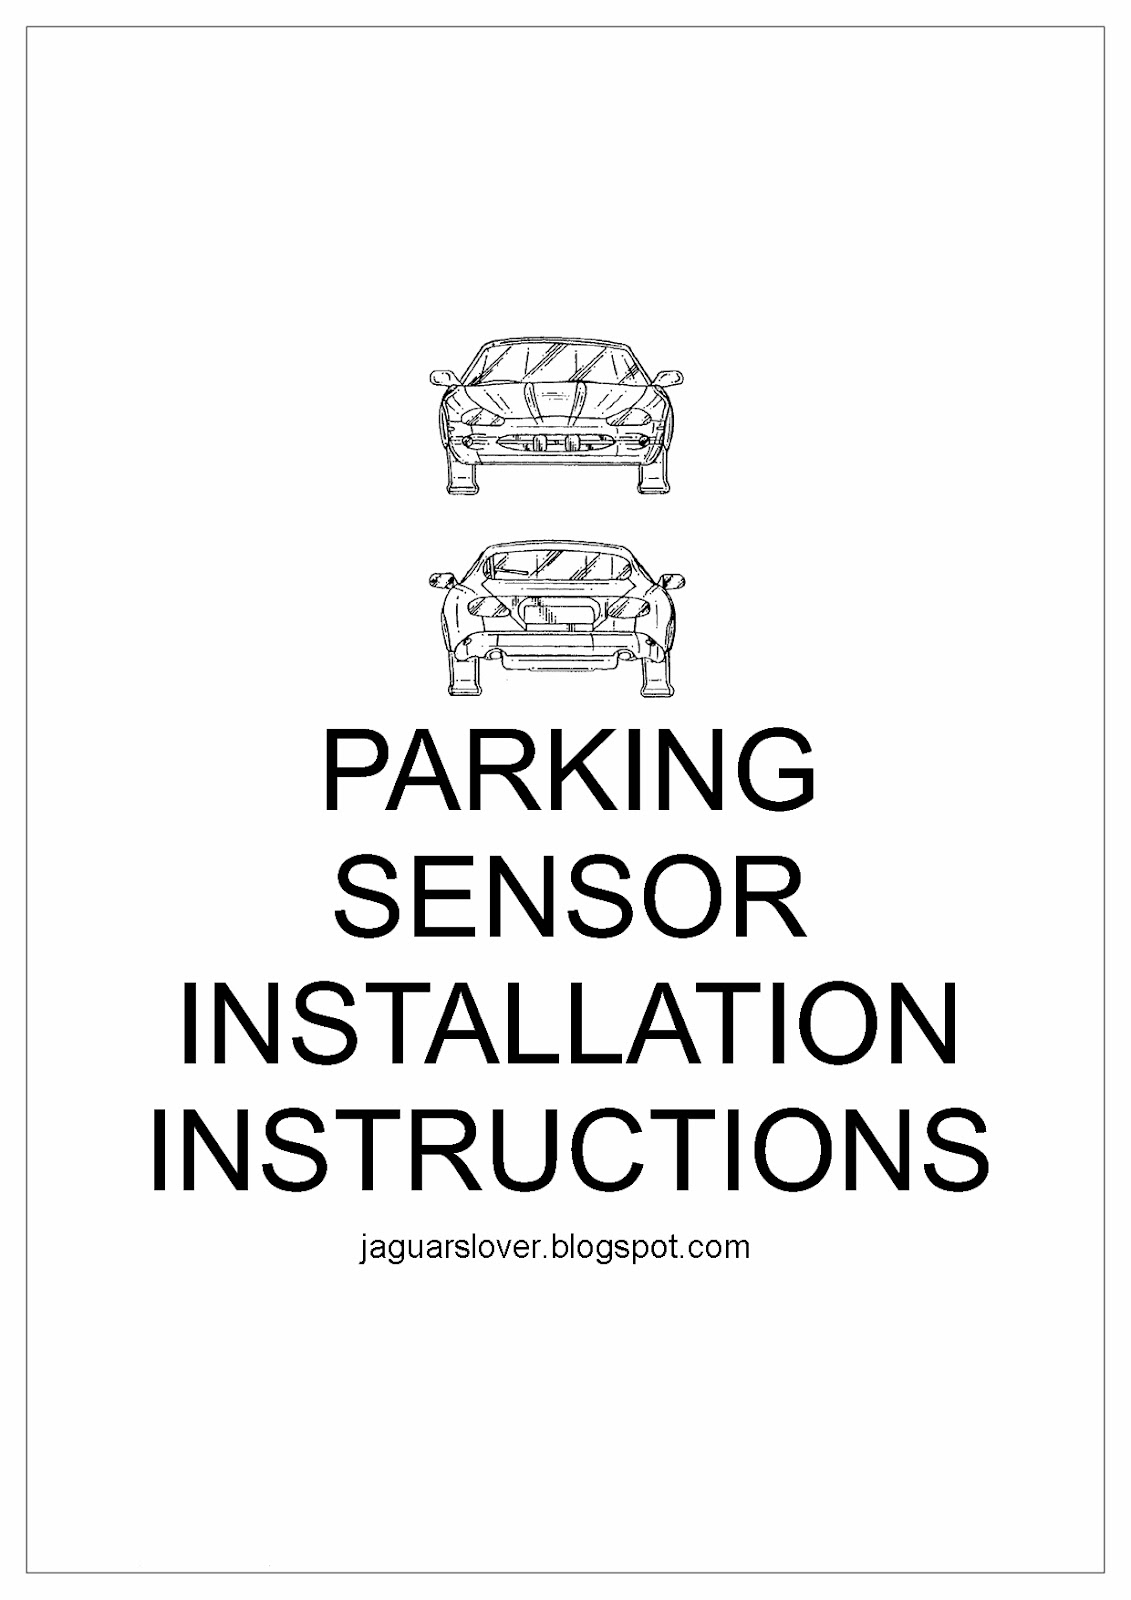 Jaguar Cars Jaguar Bumpers Fitting Parking Sensors